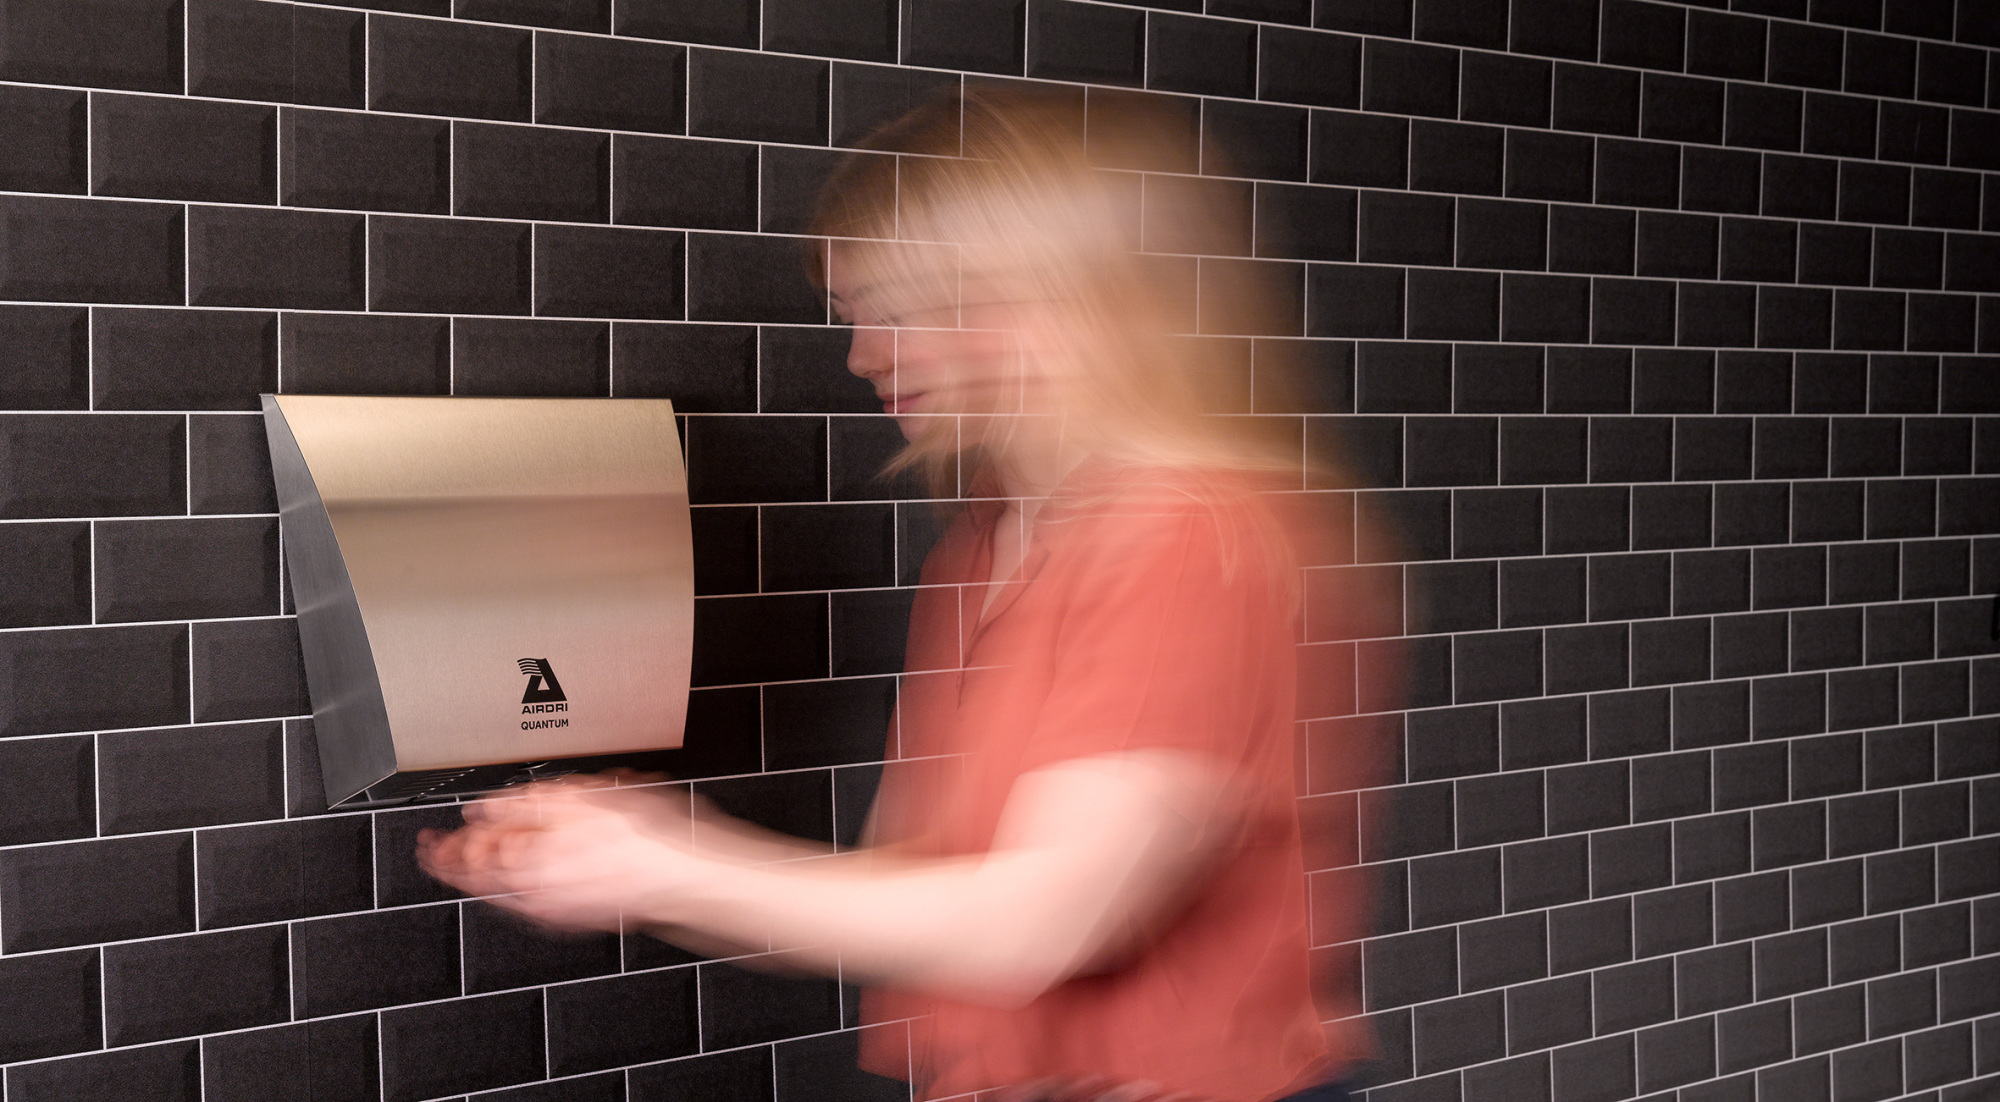 UK Government Confirms Safe Use Of Hand Dryers During Pandemic